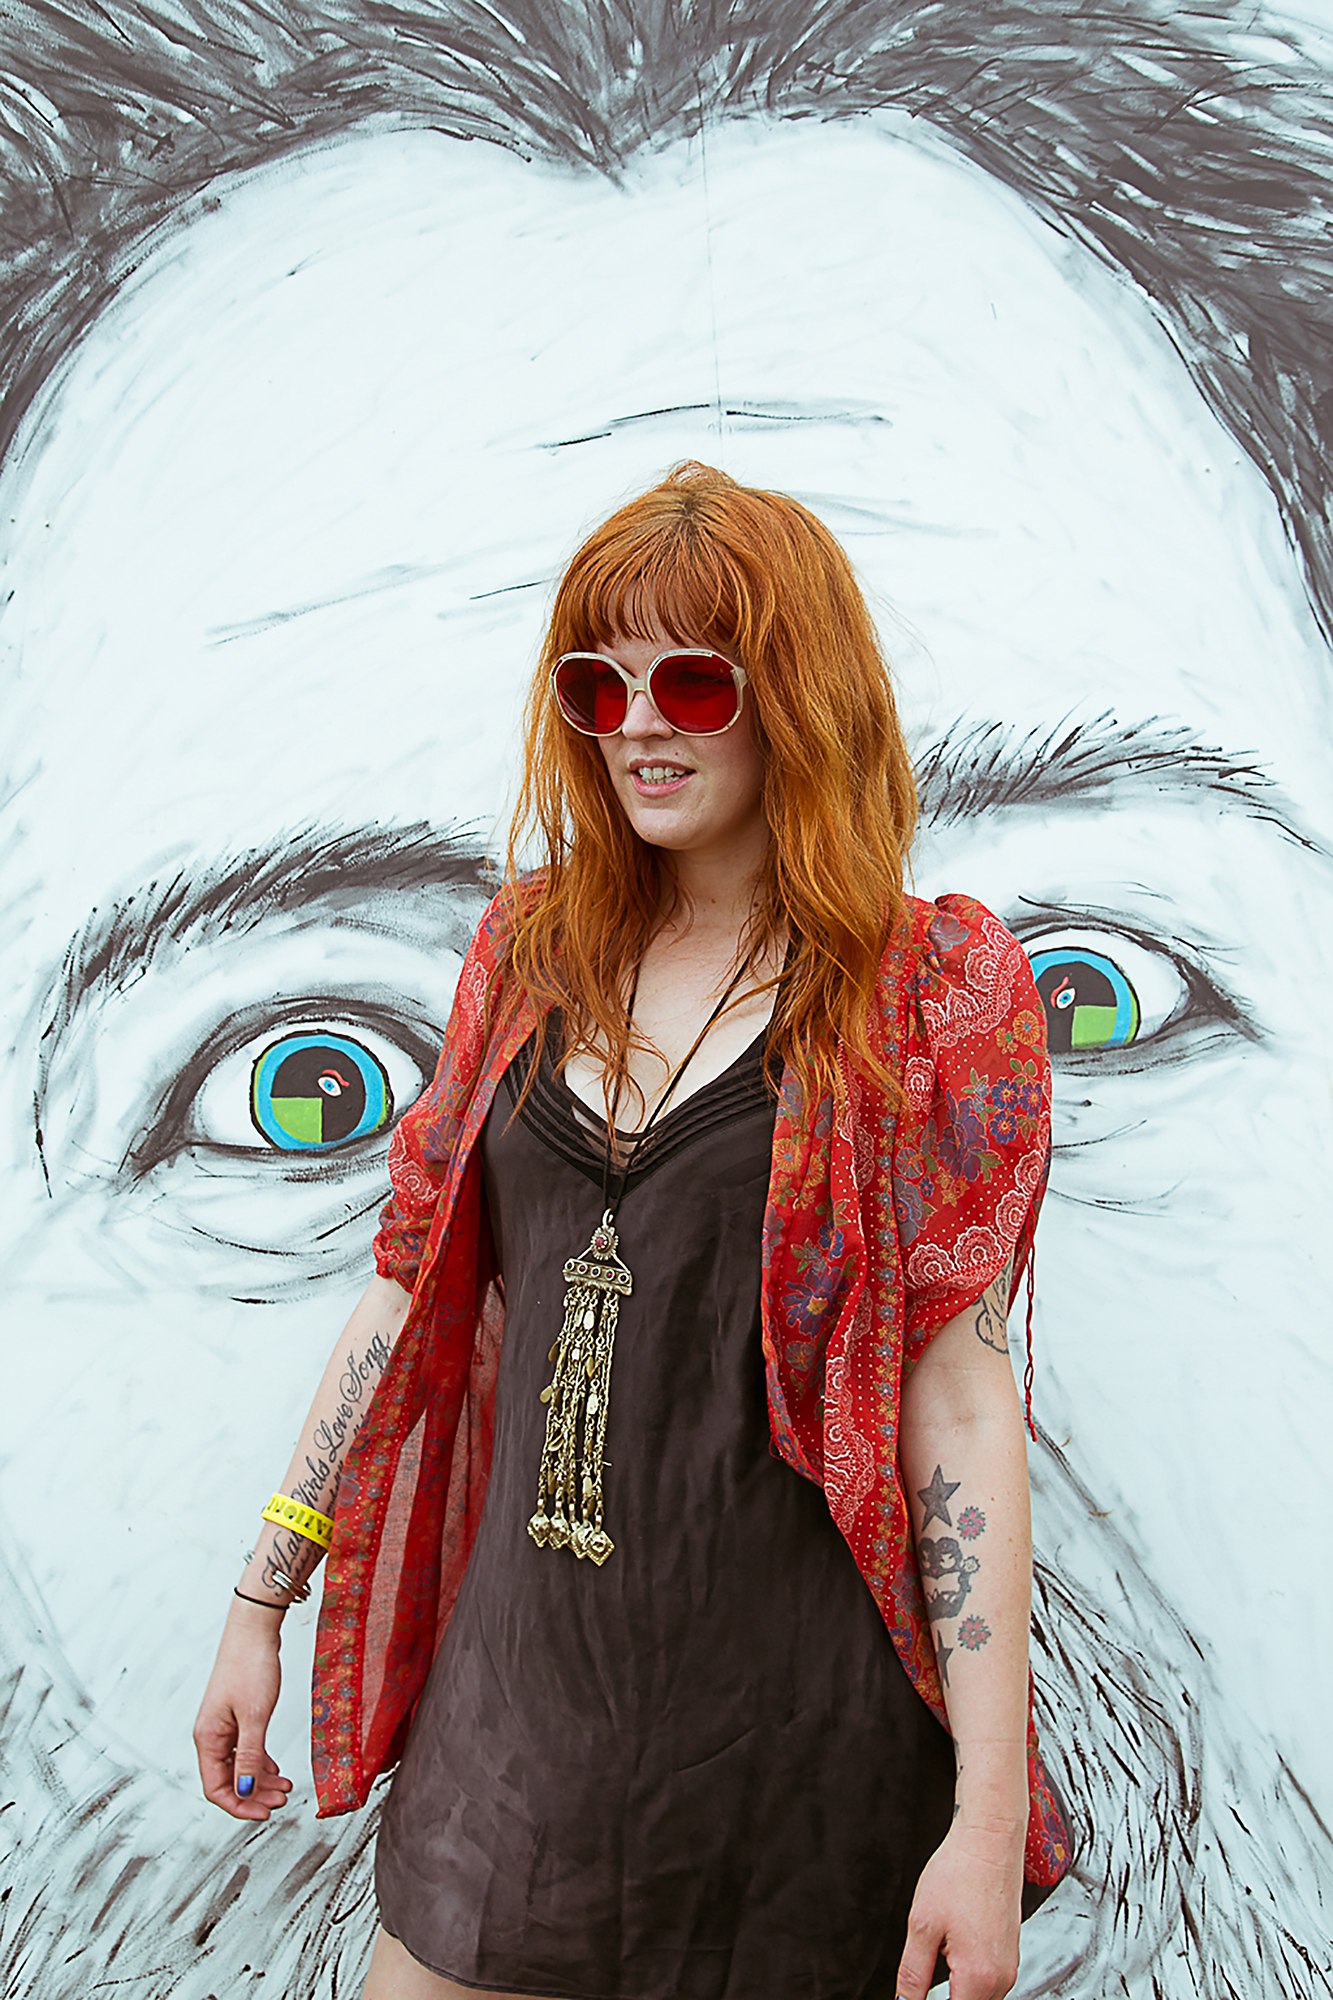 Orange hair and red sunglasses